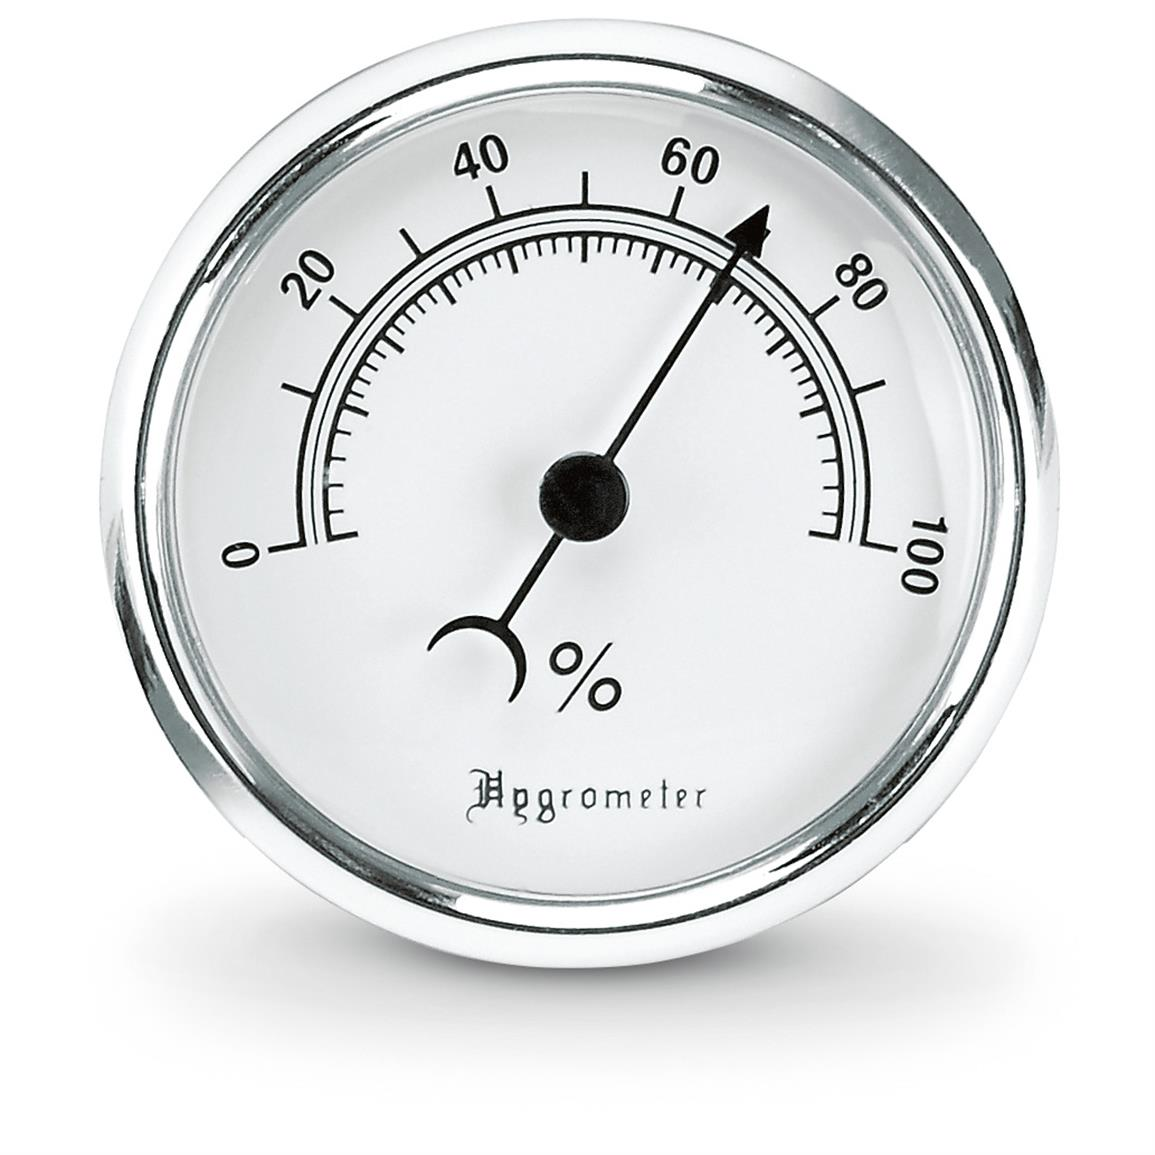 Monitor safe humidity levels with the Hygrometer